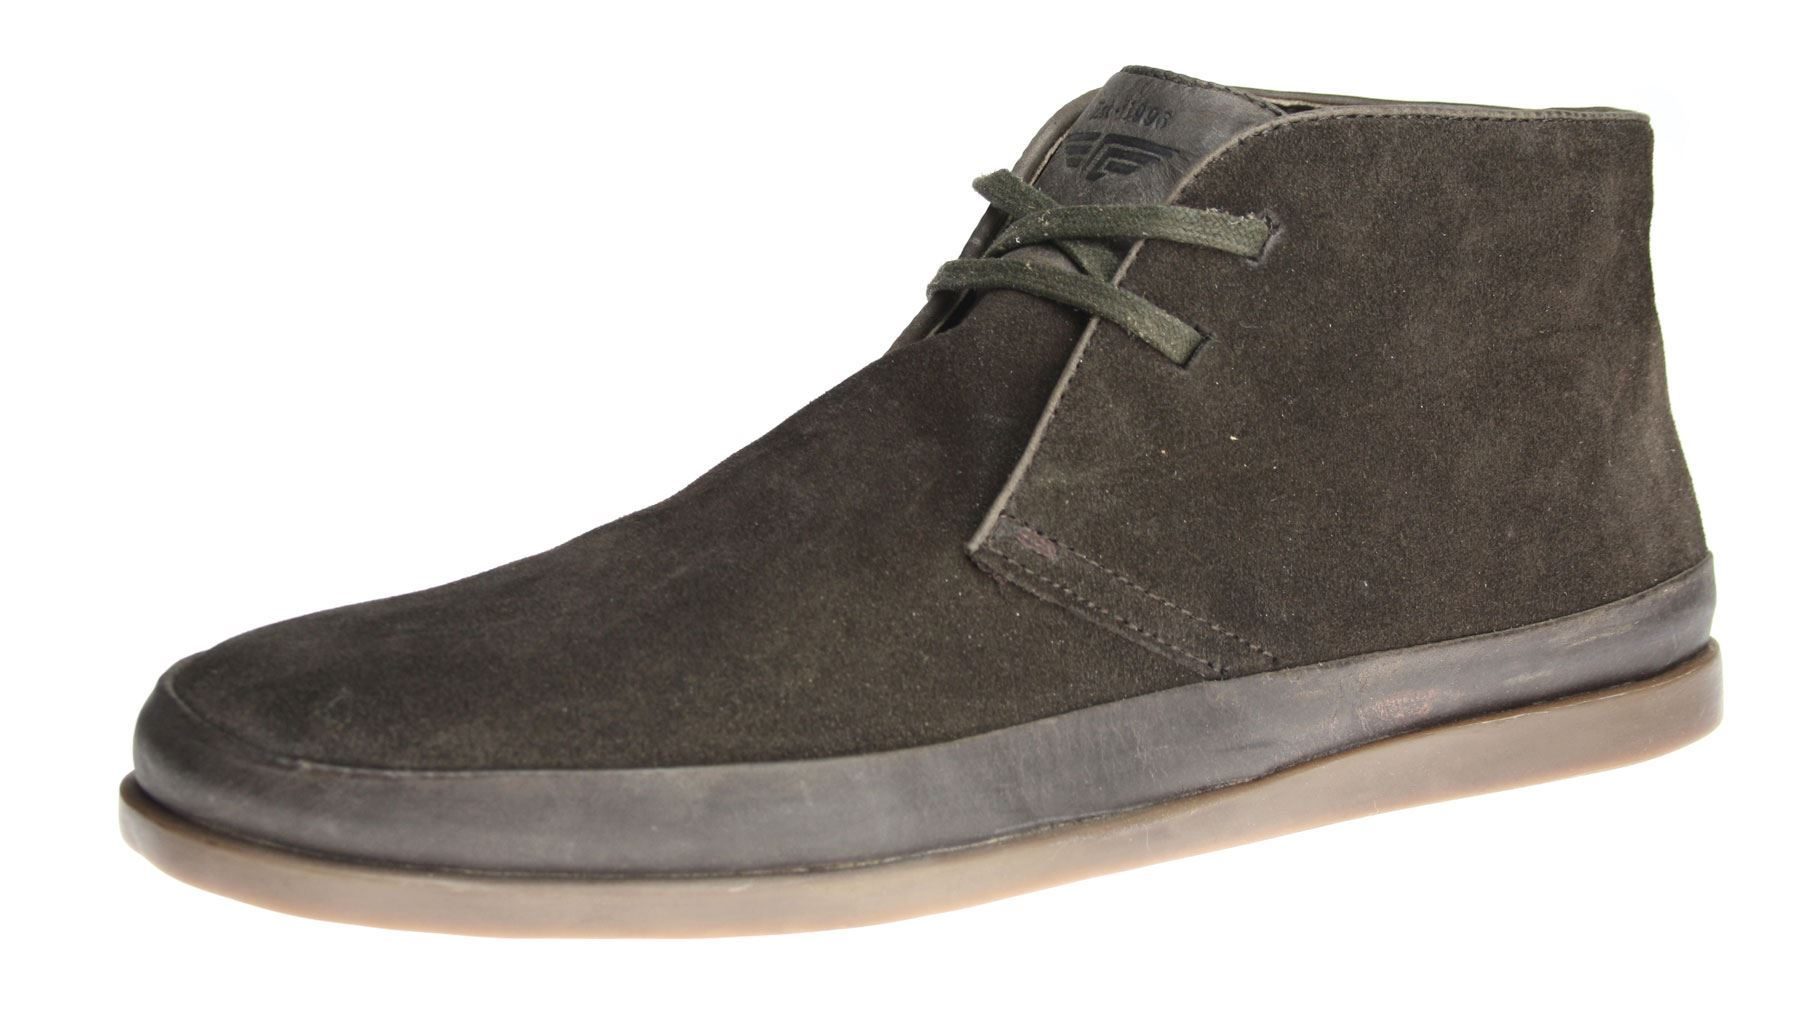 Mens Red Tape Thurso Navy Blue Suede Lace Up Ankle Desert Boots Sizes UK 7-12